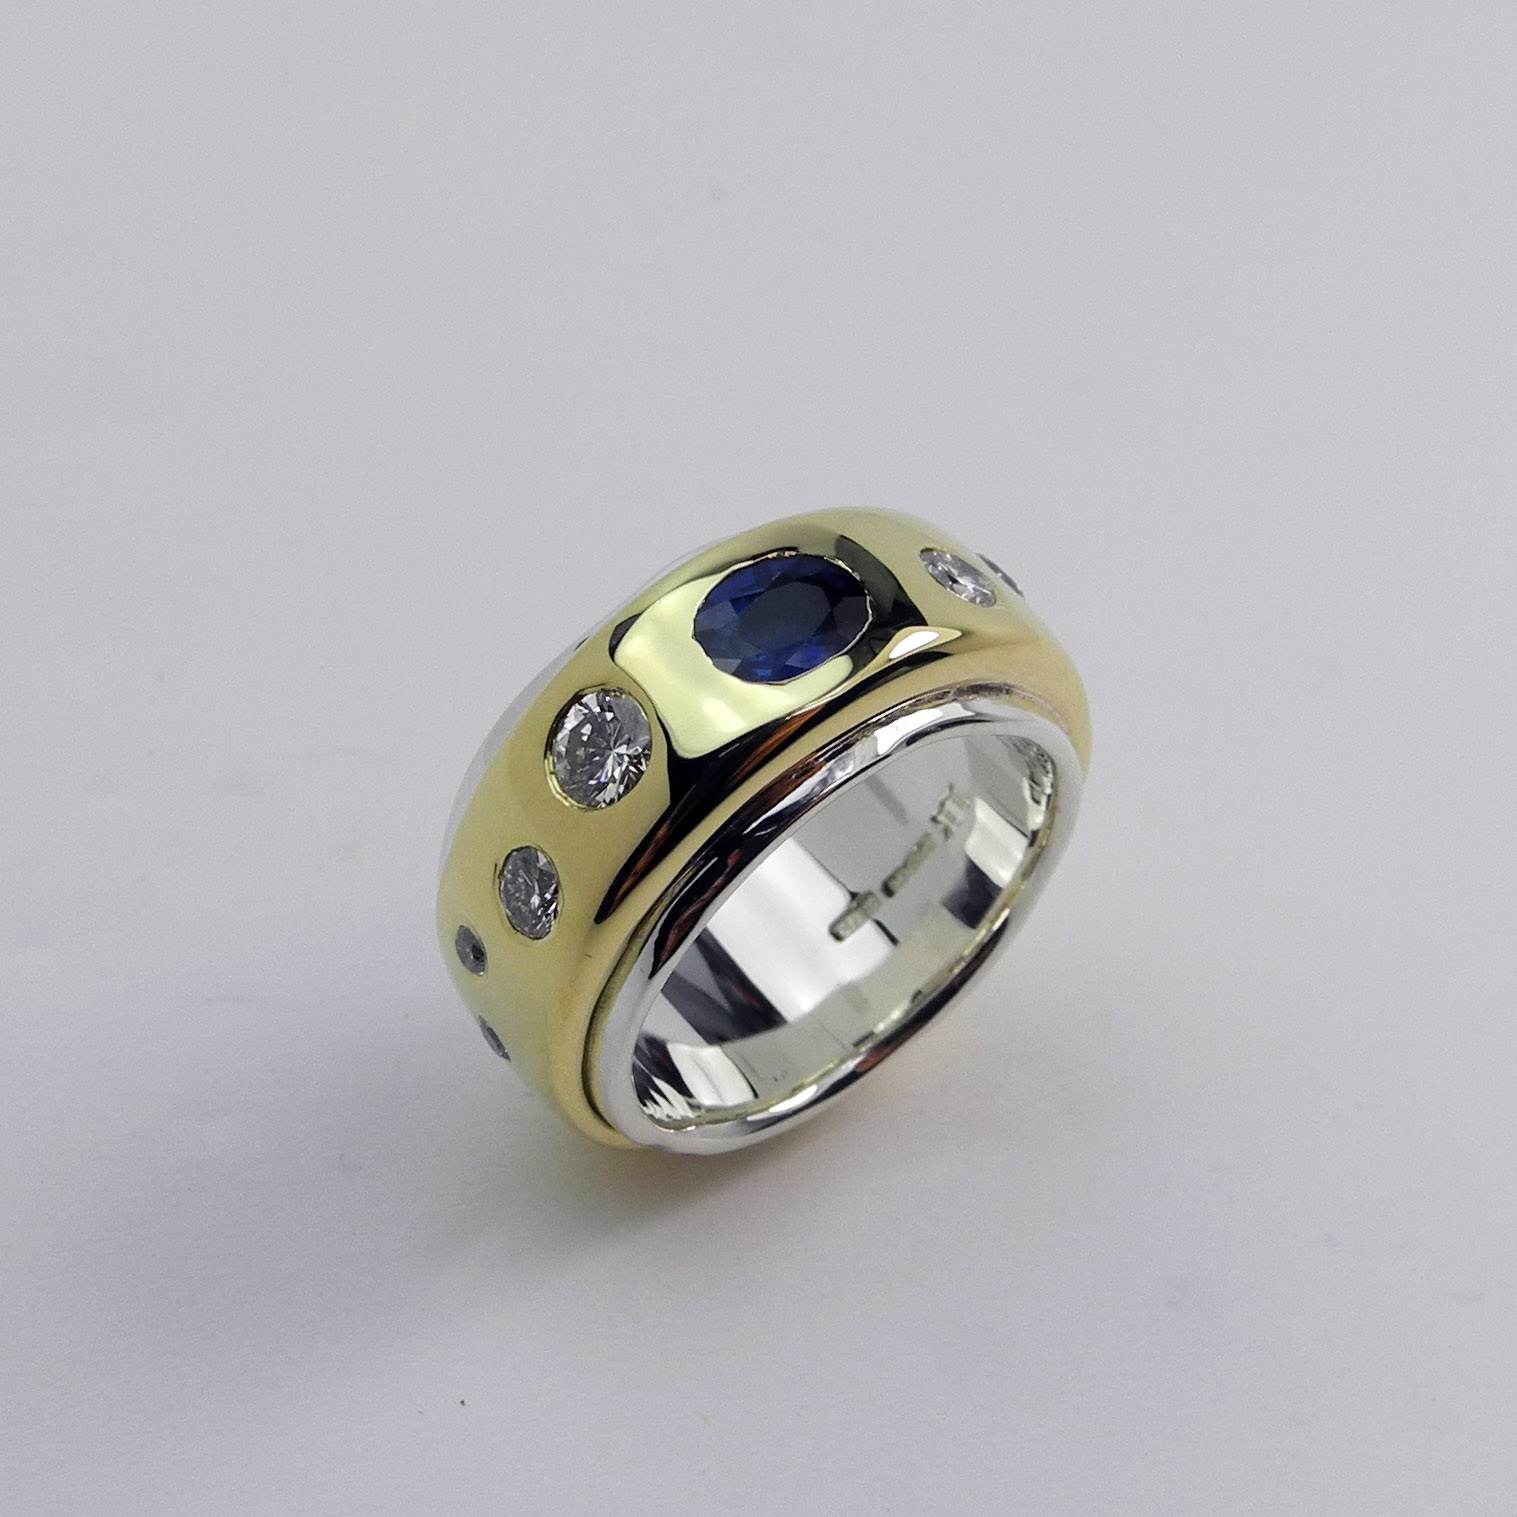 18ct gold around silver with sapphire and diamonds